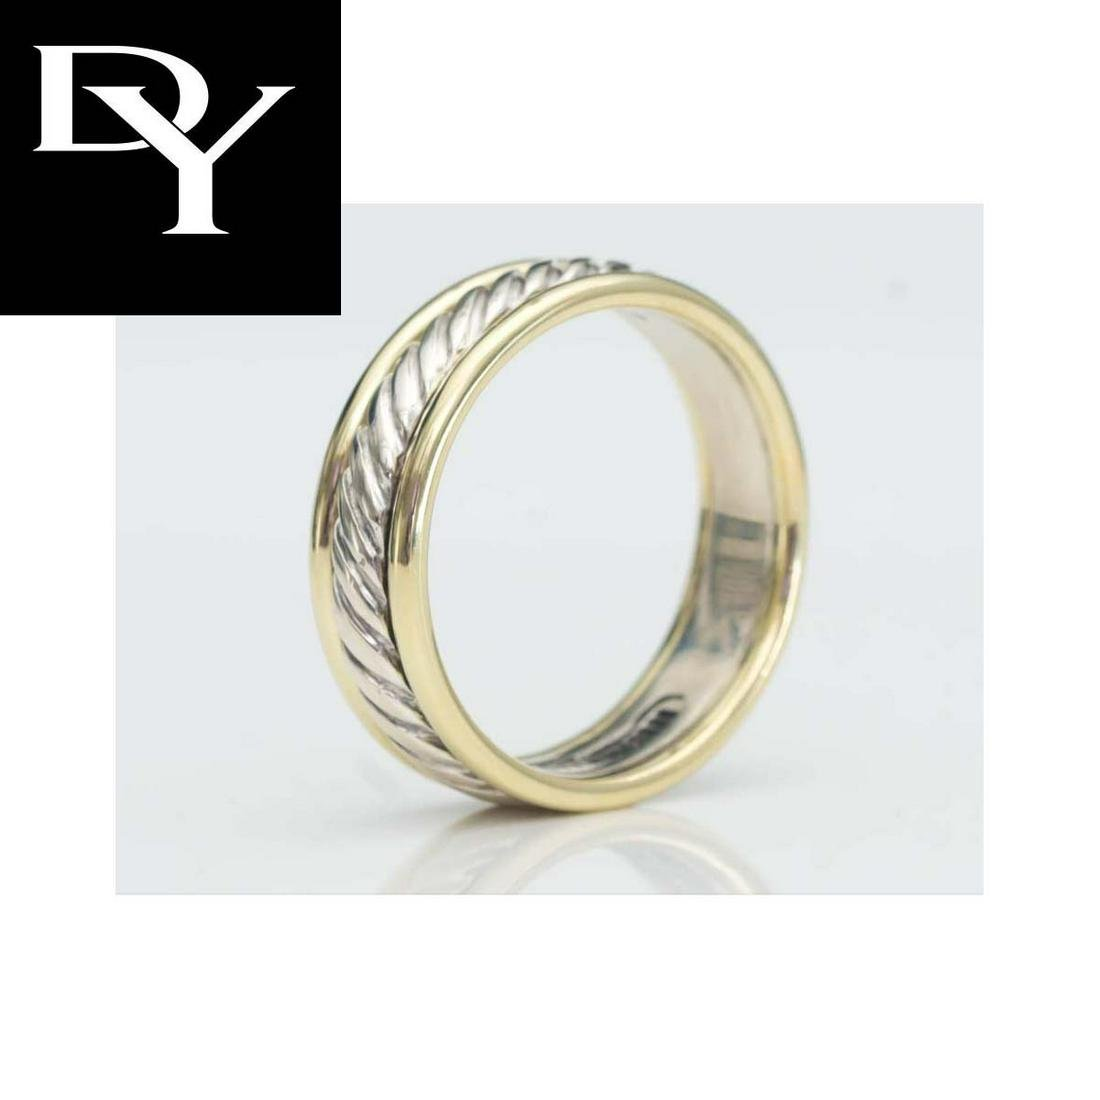 YURMAN 14K GOLD STERLING SILVER CABLE WEDDING BAND RING